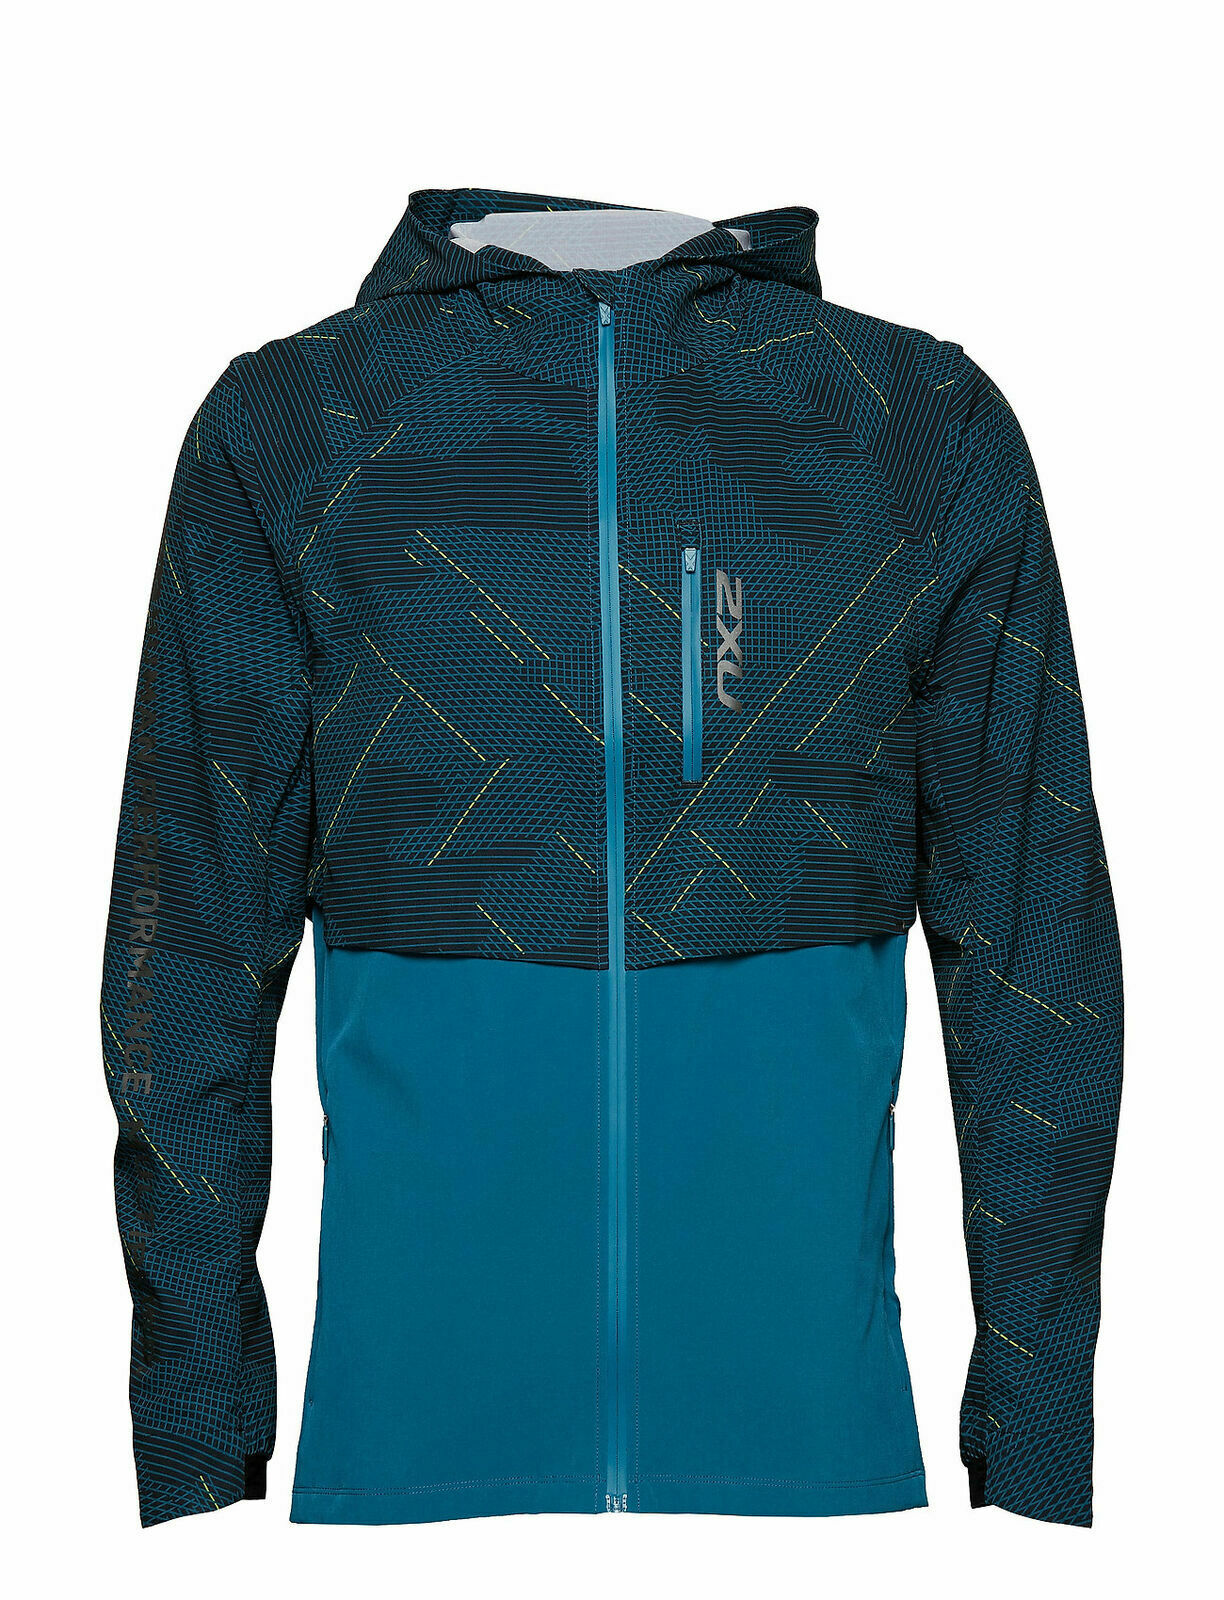 2XU GHST Running Active Jacket 2 in 1 Woven Linear Camo, Men's X-Small RRP